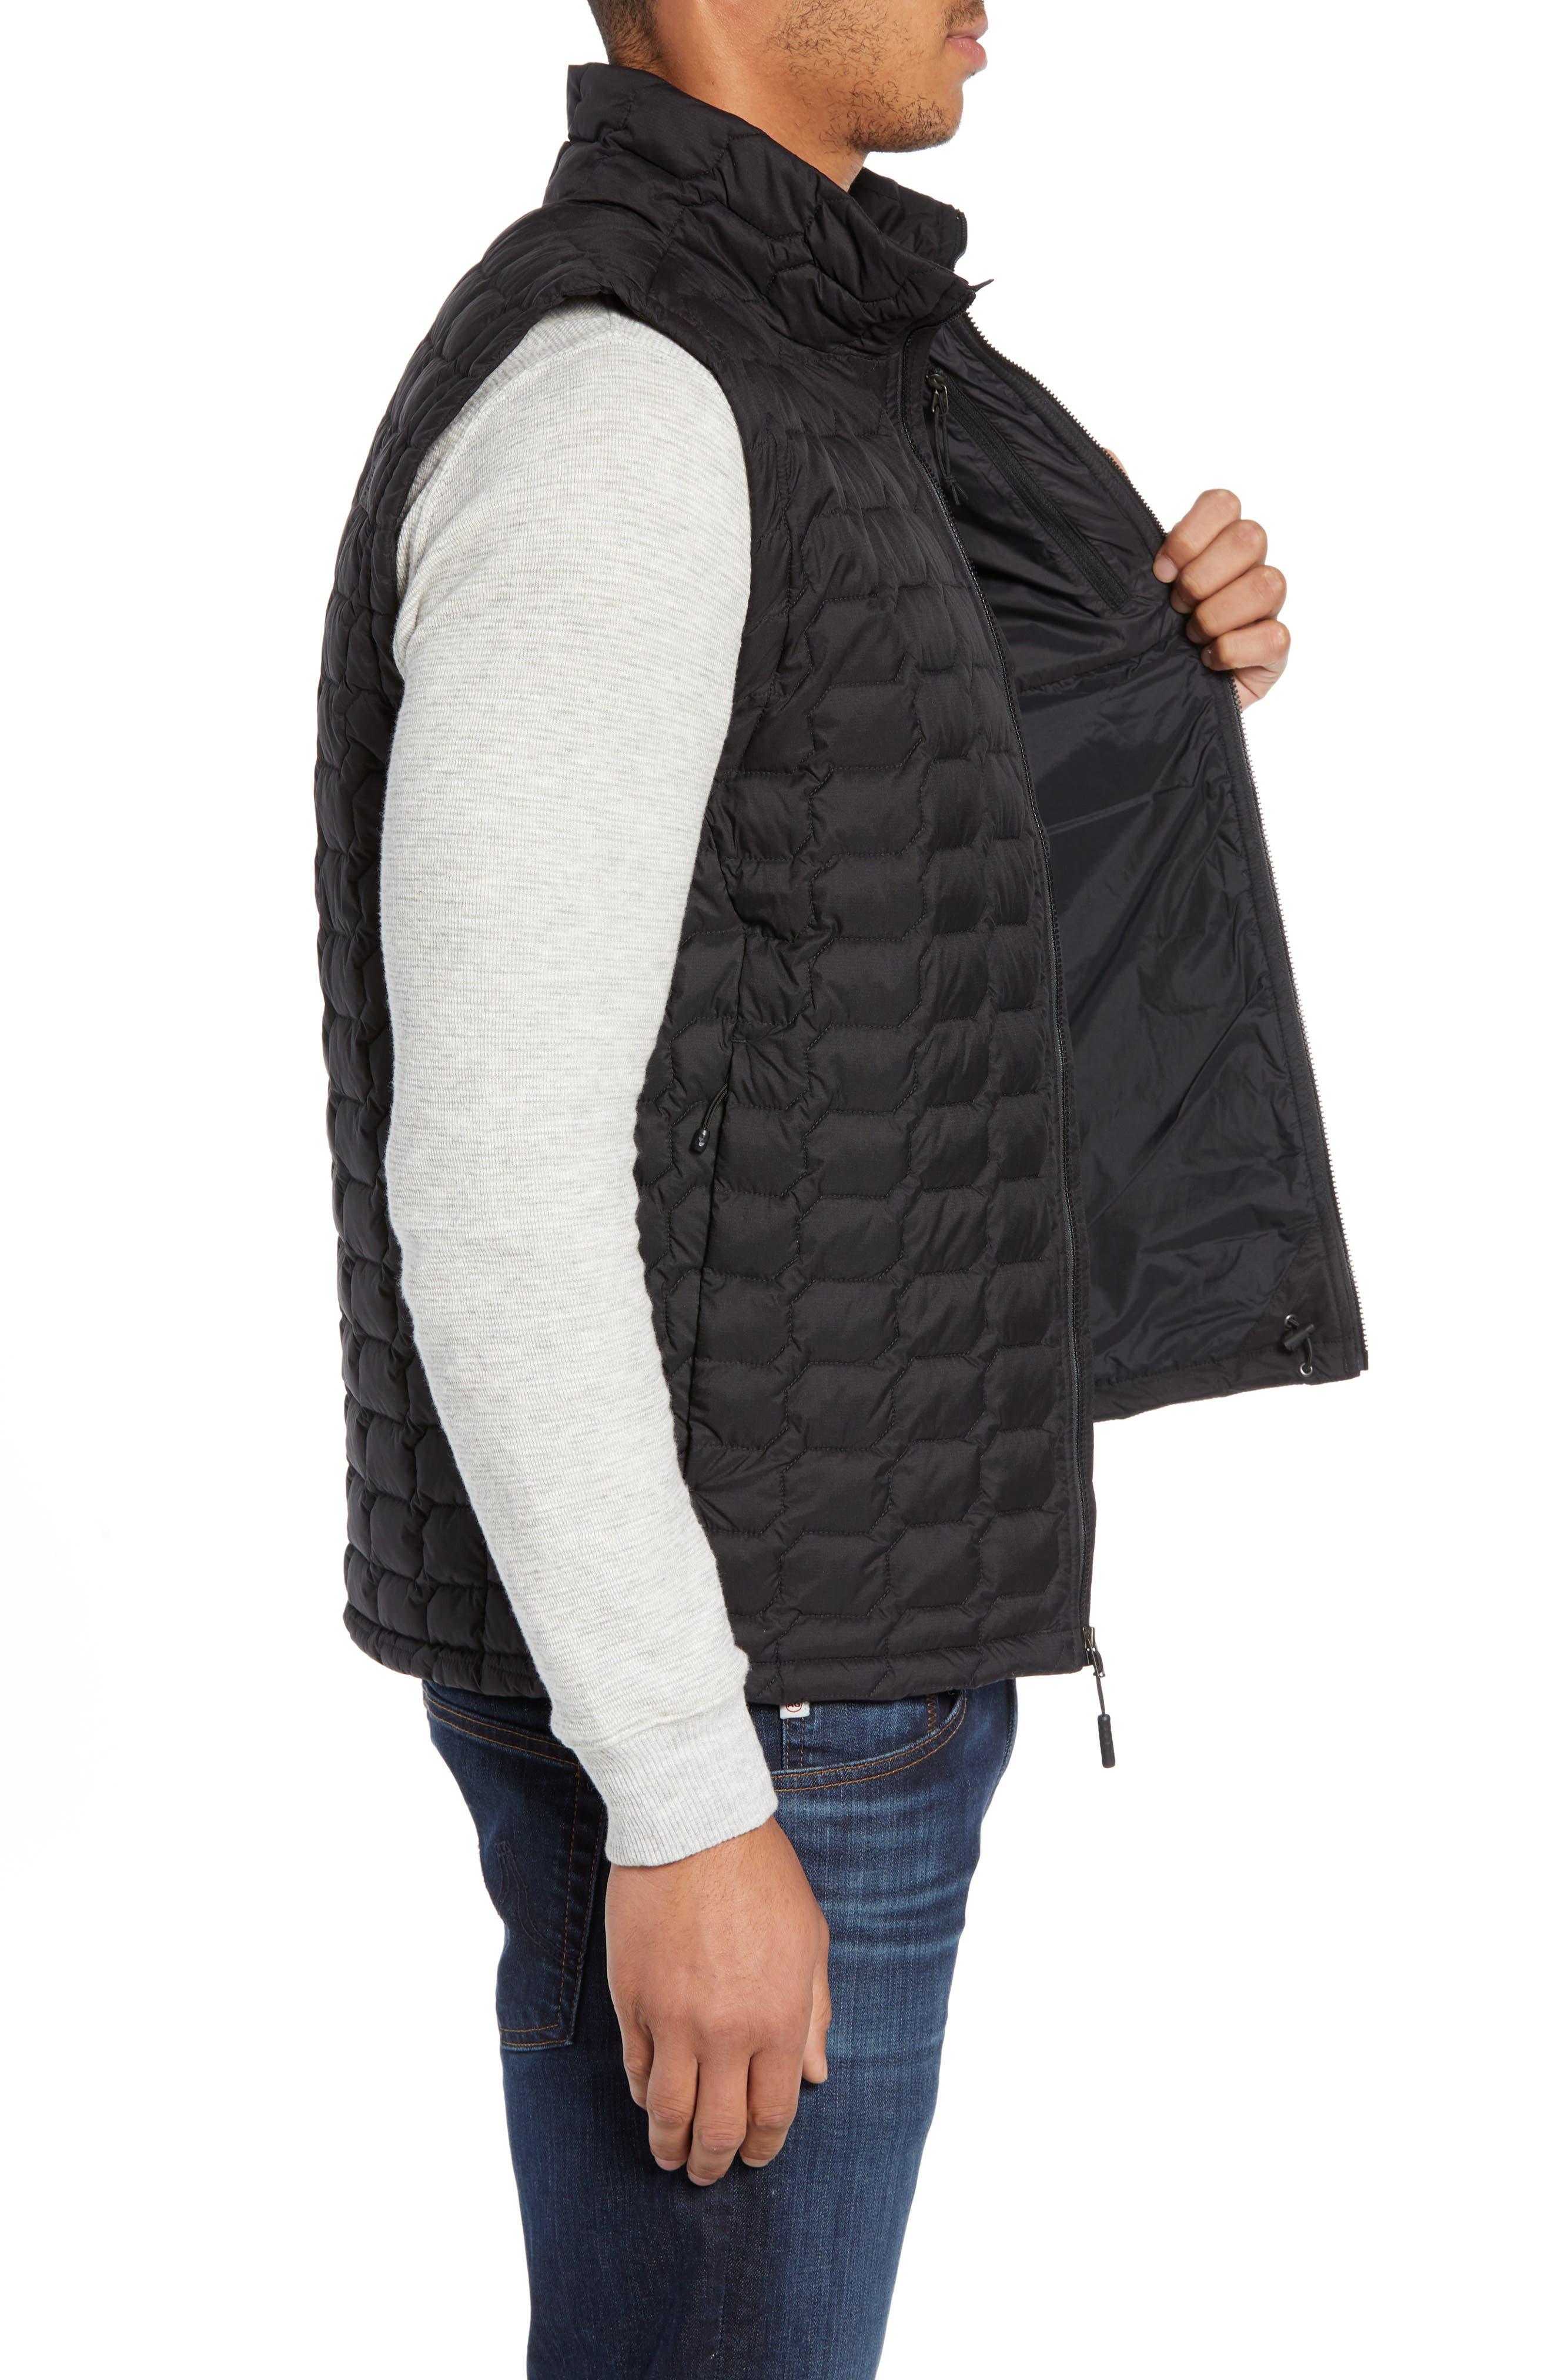 THE NORTH FACE, Thermoball<sup>®</sup> PrimaLoft<sup>®</sup> Vest, Alternate thumbnail 4, color, TNF BLACK MATTE